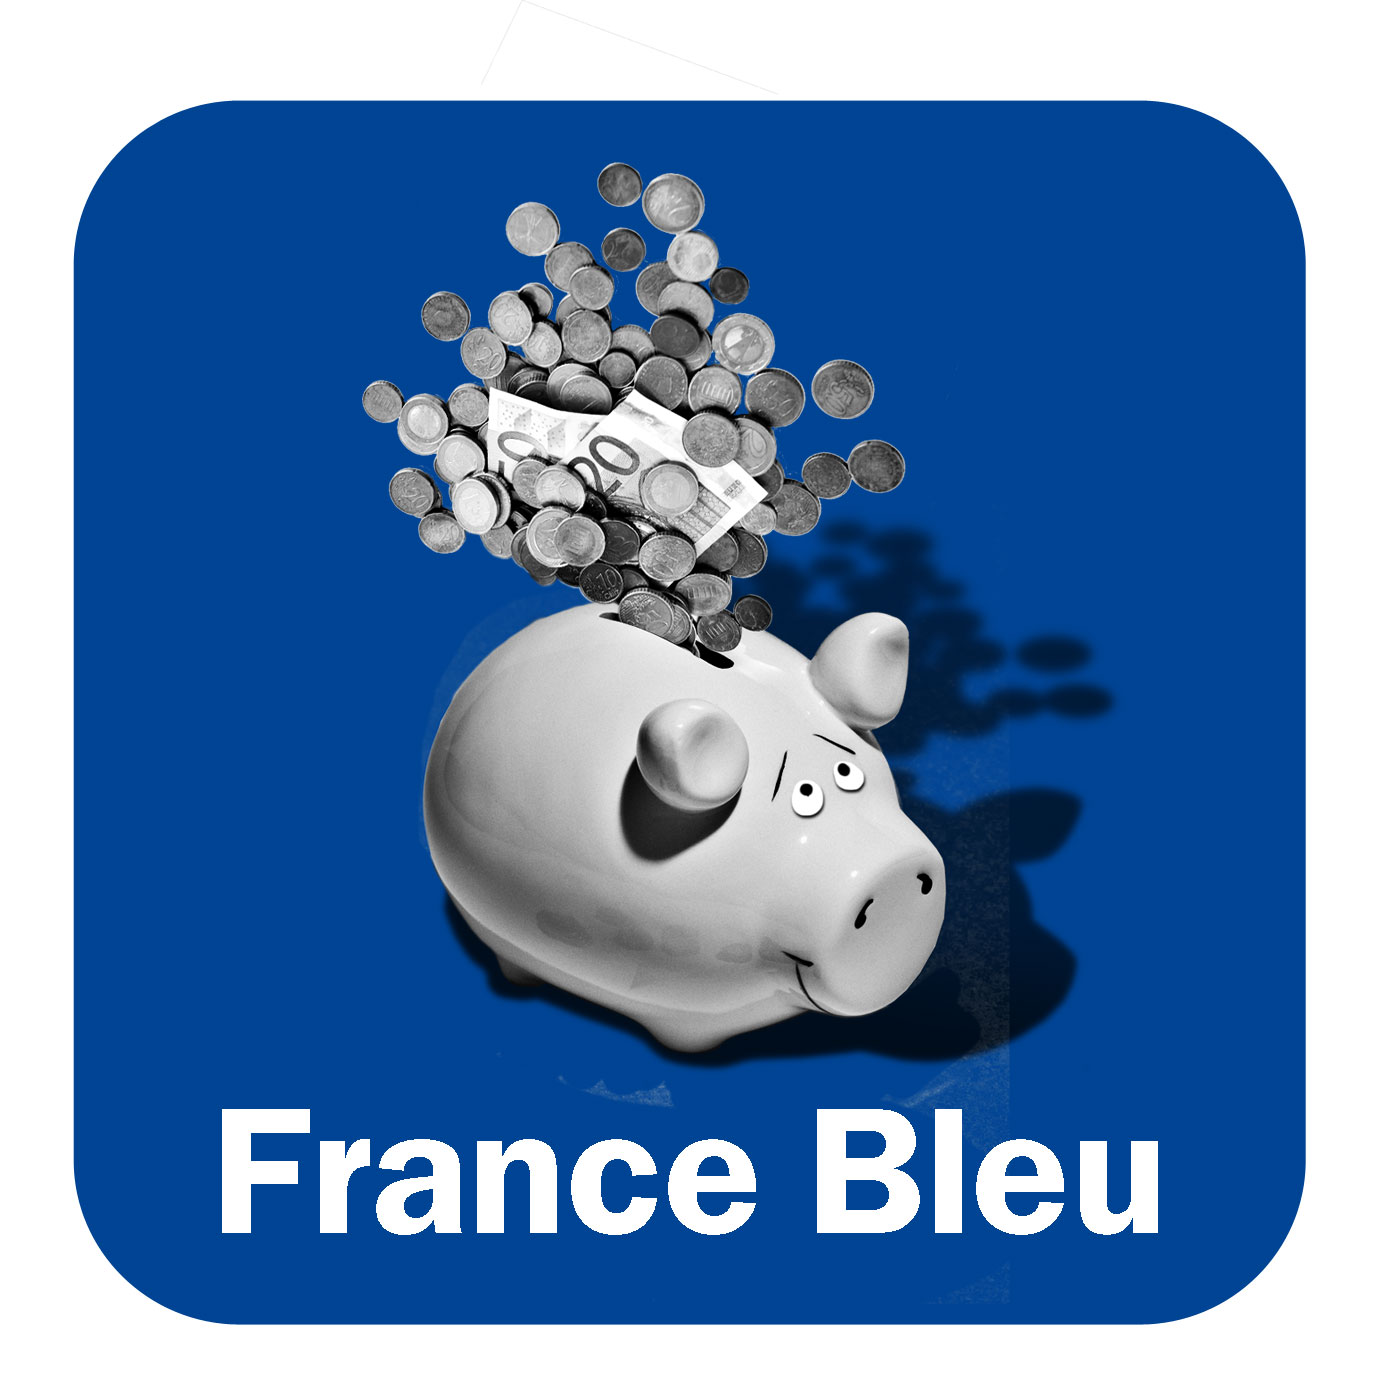 Eco du 34 France Bleu Hérault